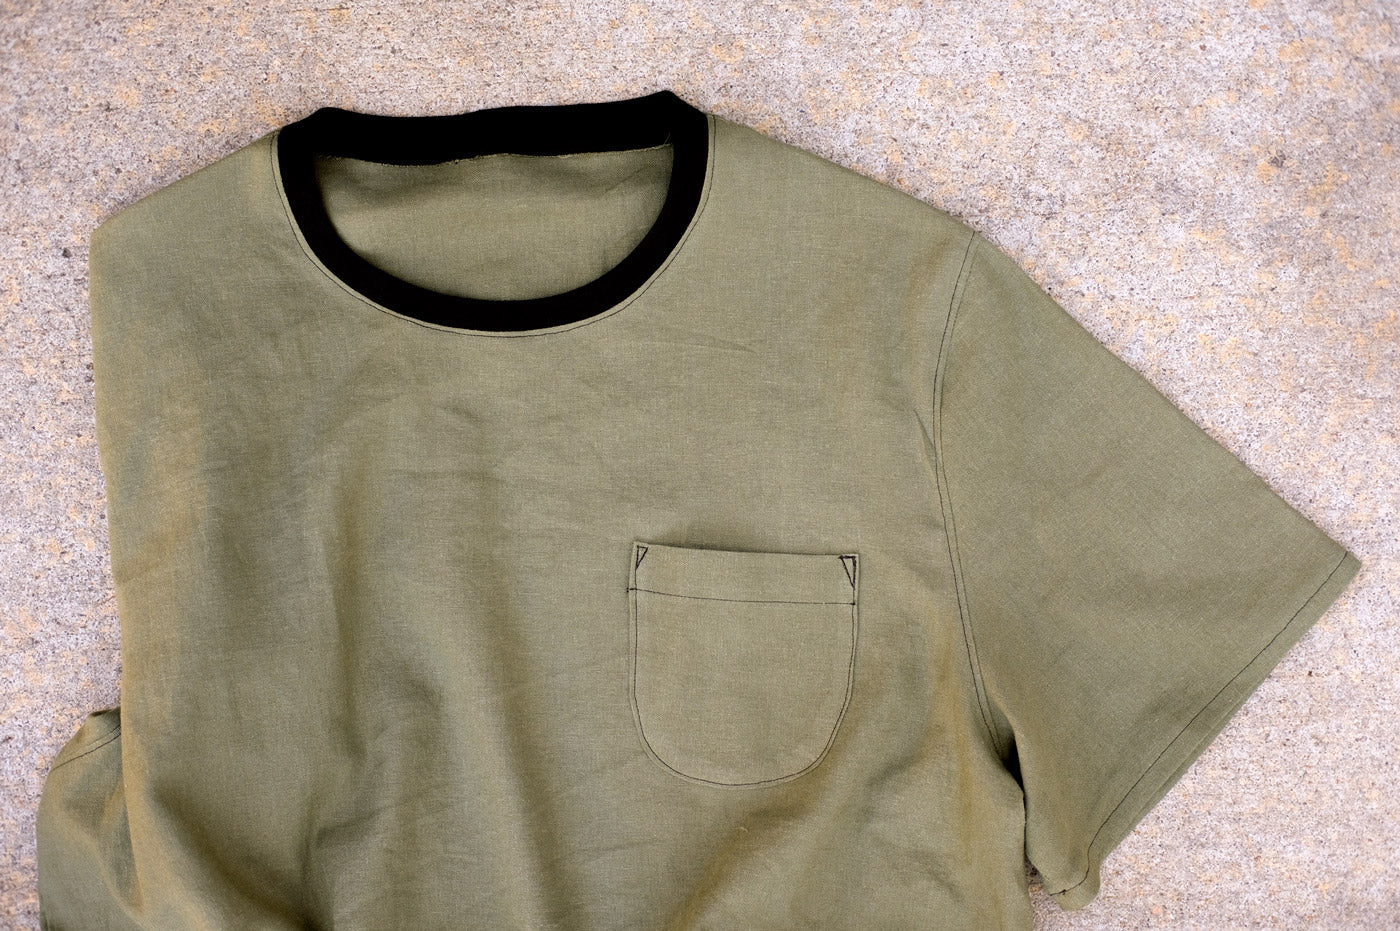 OD Green Brussels Washer The Tee Shirt by Merchant & Mills